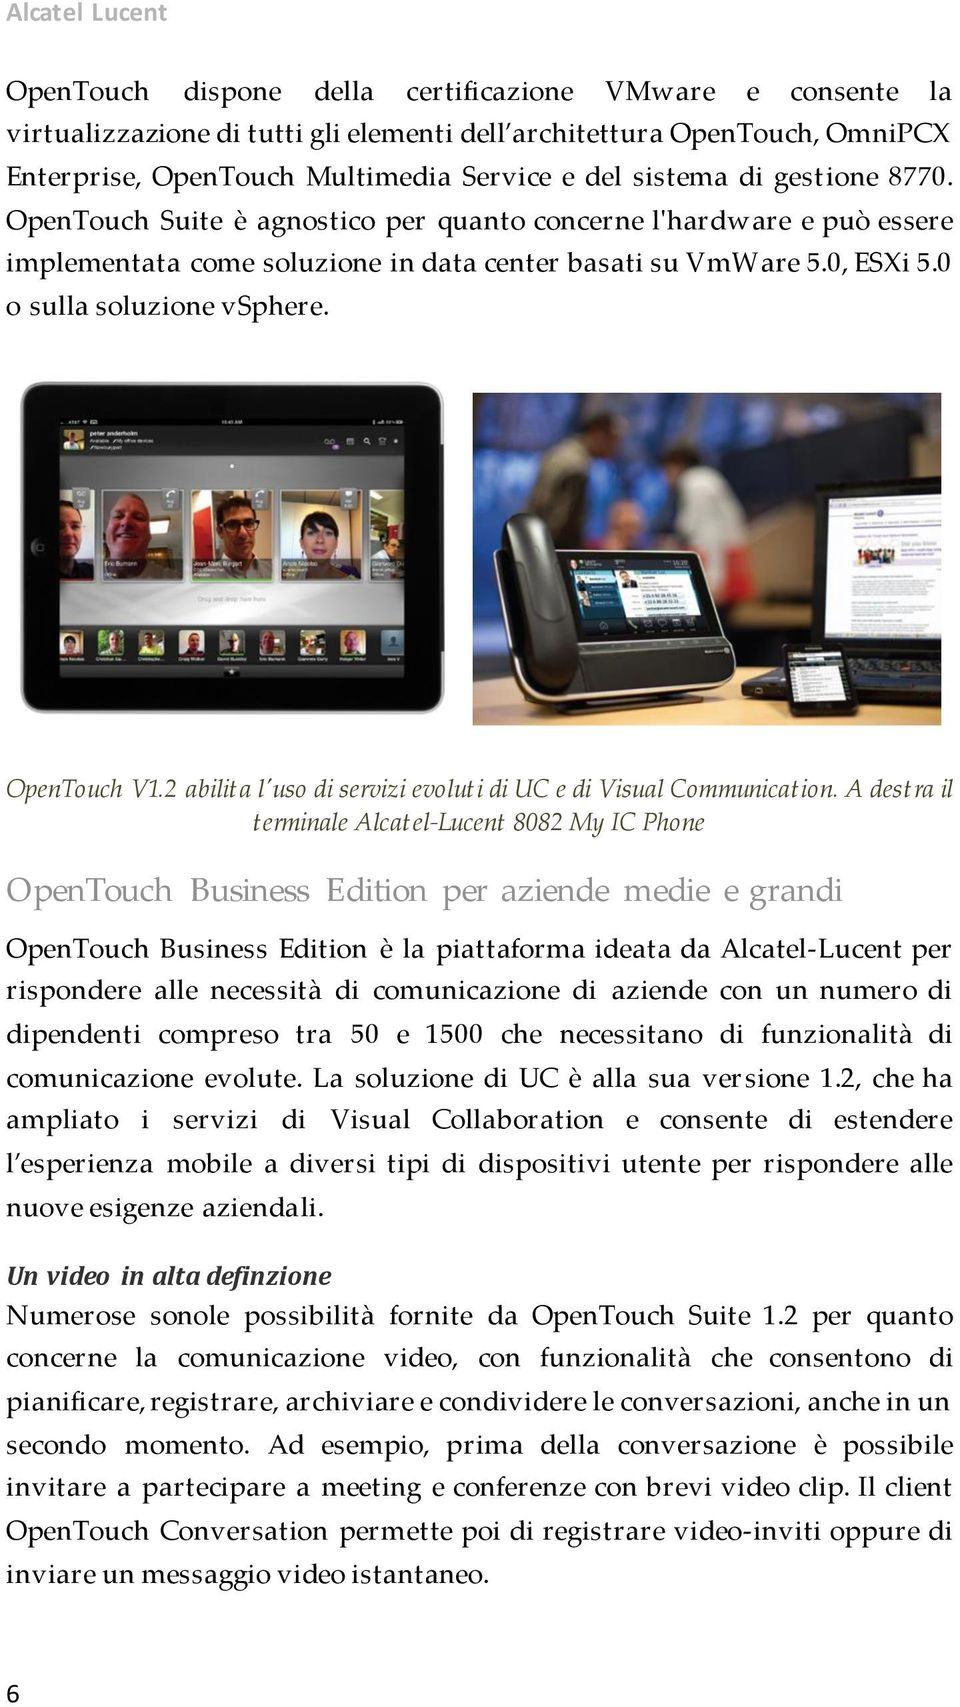 OpenTouch V1.2 abilita l'uso di servizi evoluti di UC e di Visual Communication.